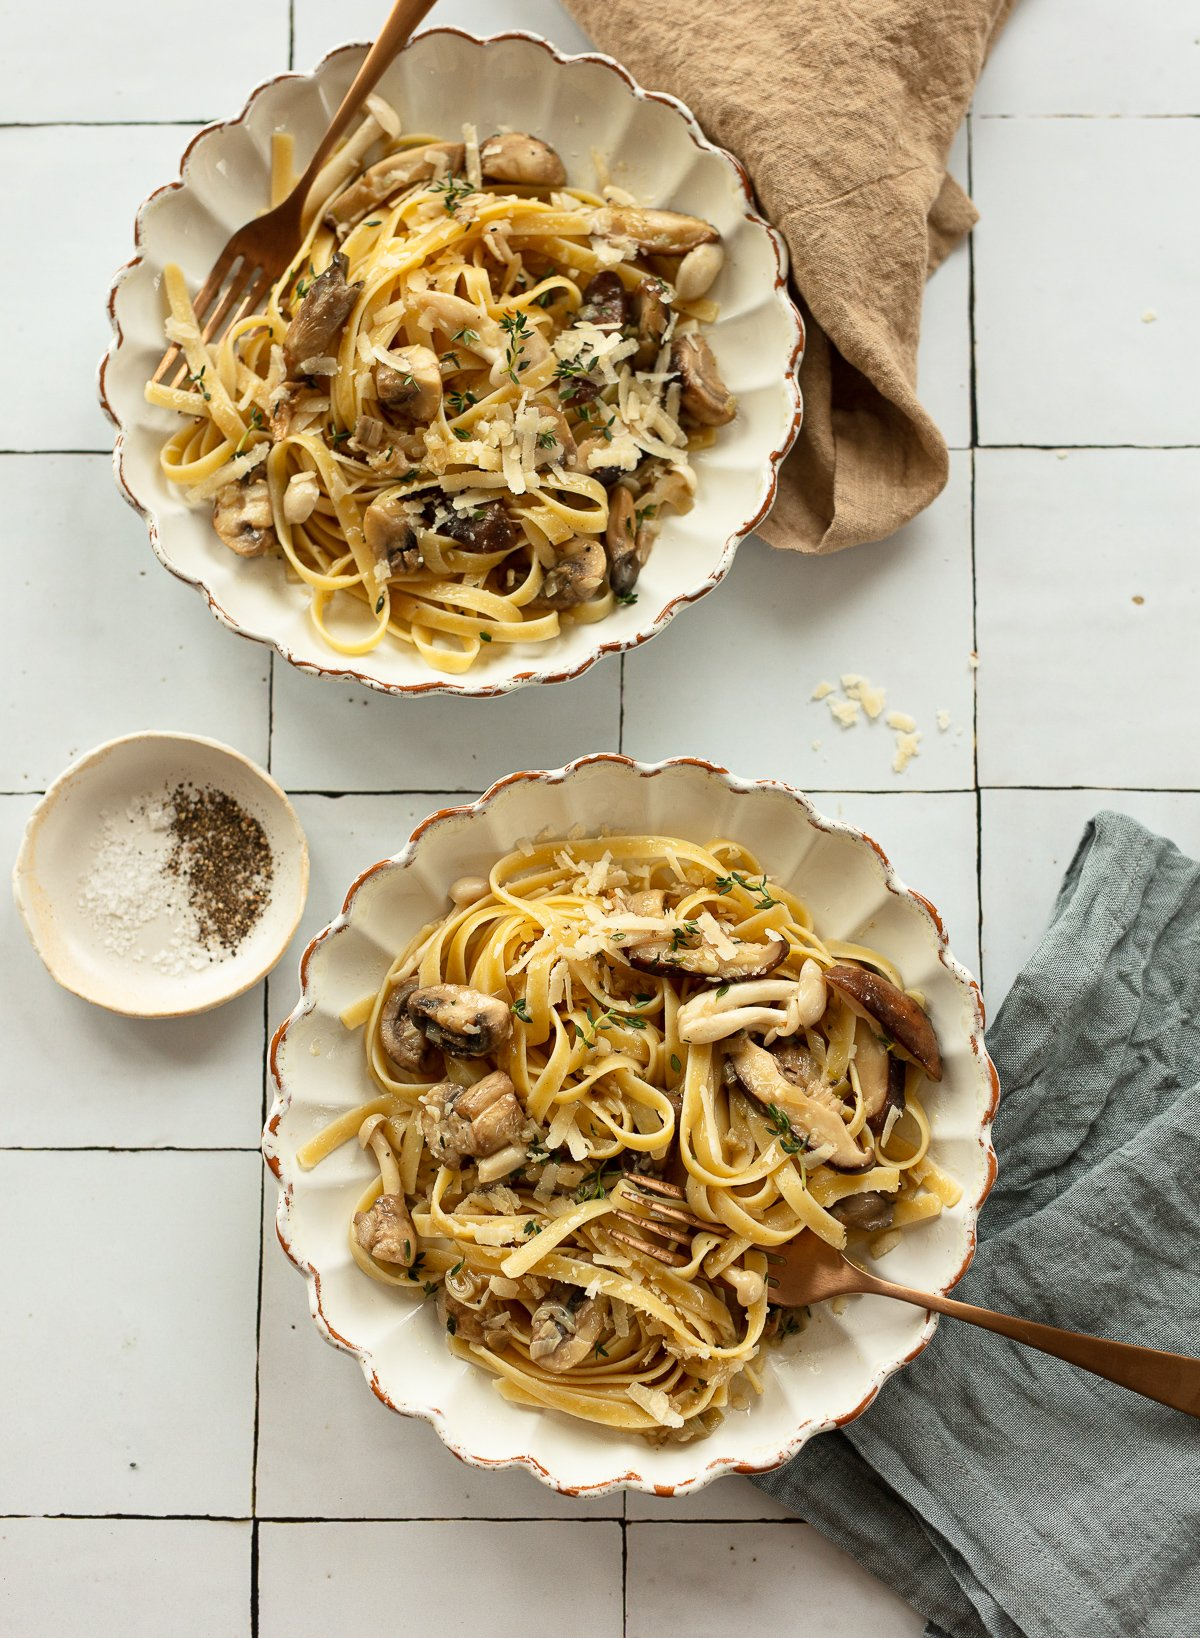 Image: Bowls of mushroom pasta topped with mushroom sauce, with cheese and forks